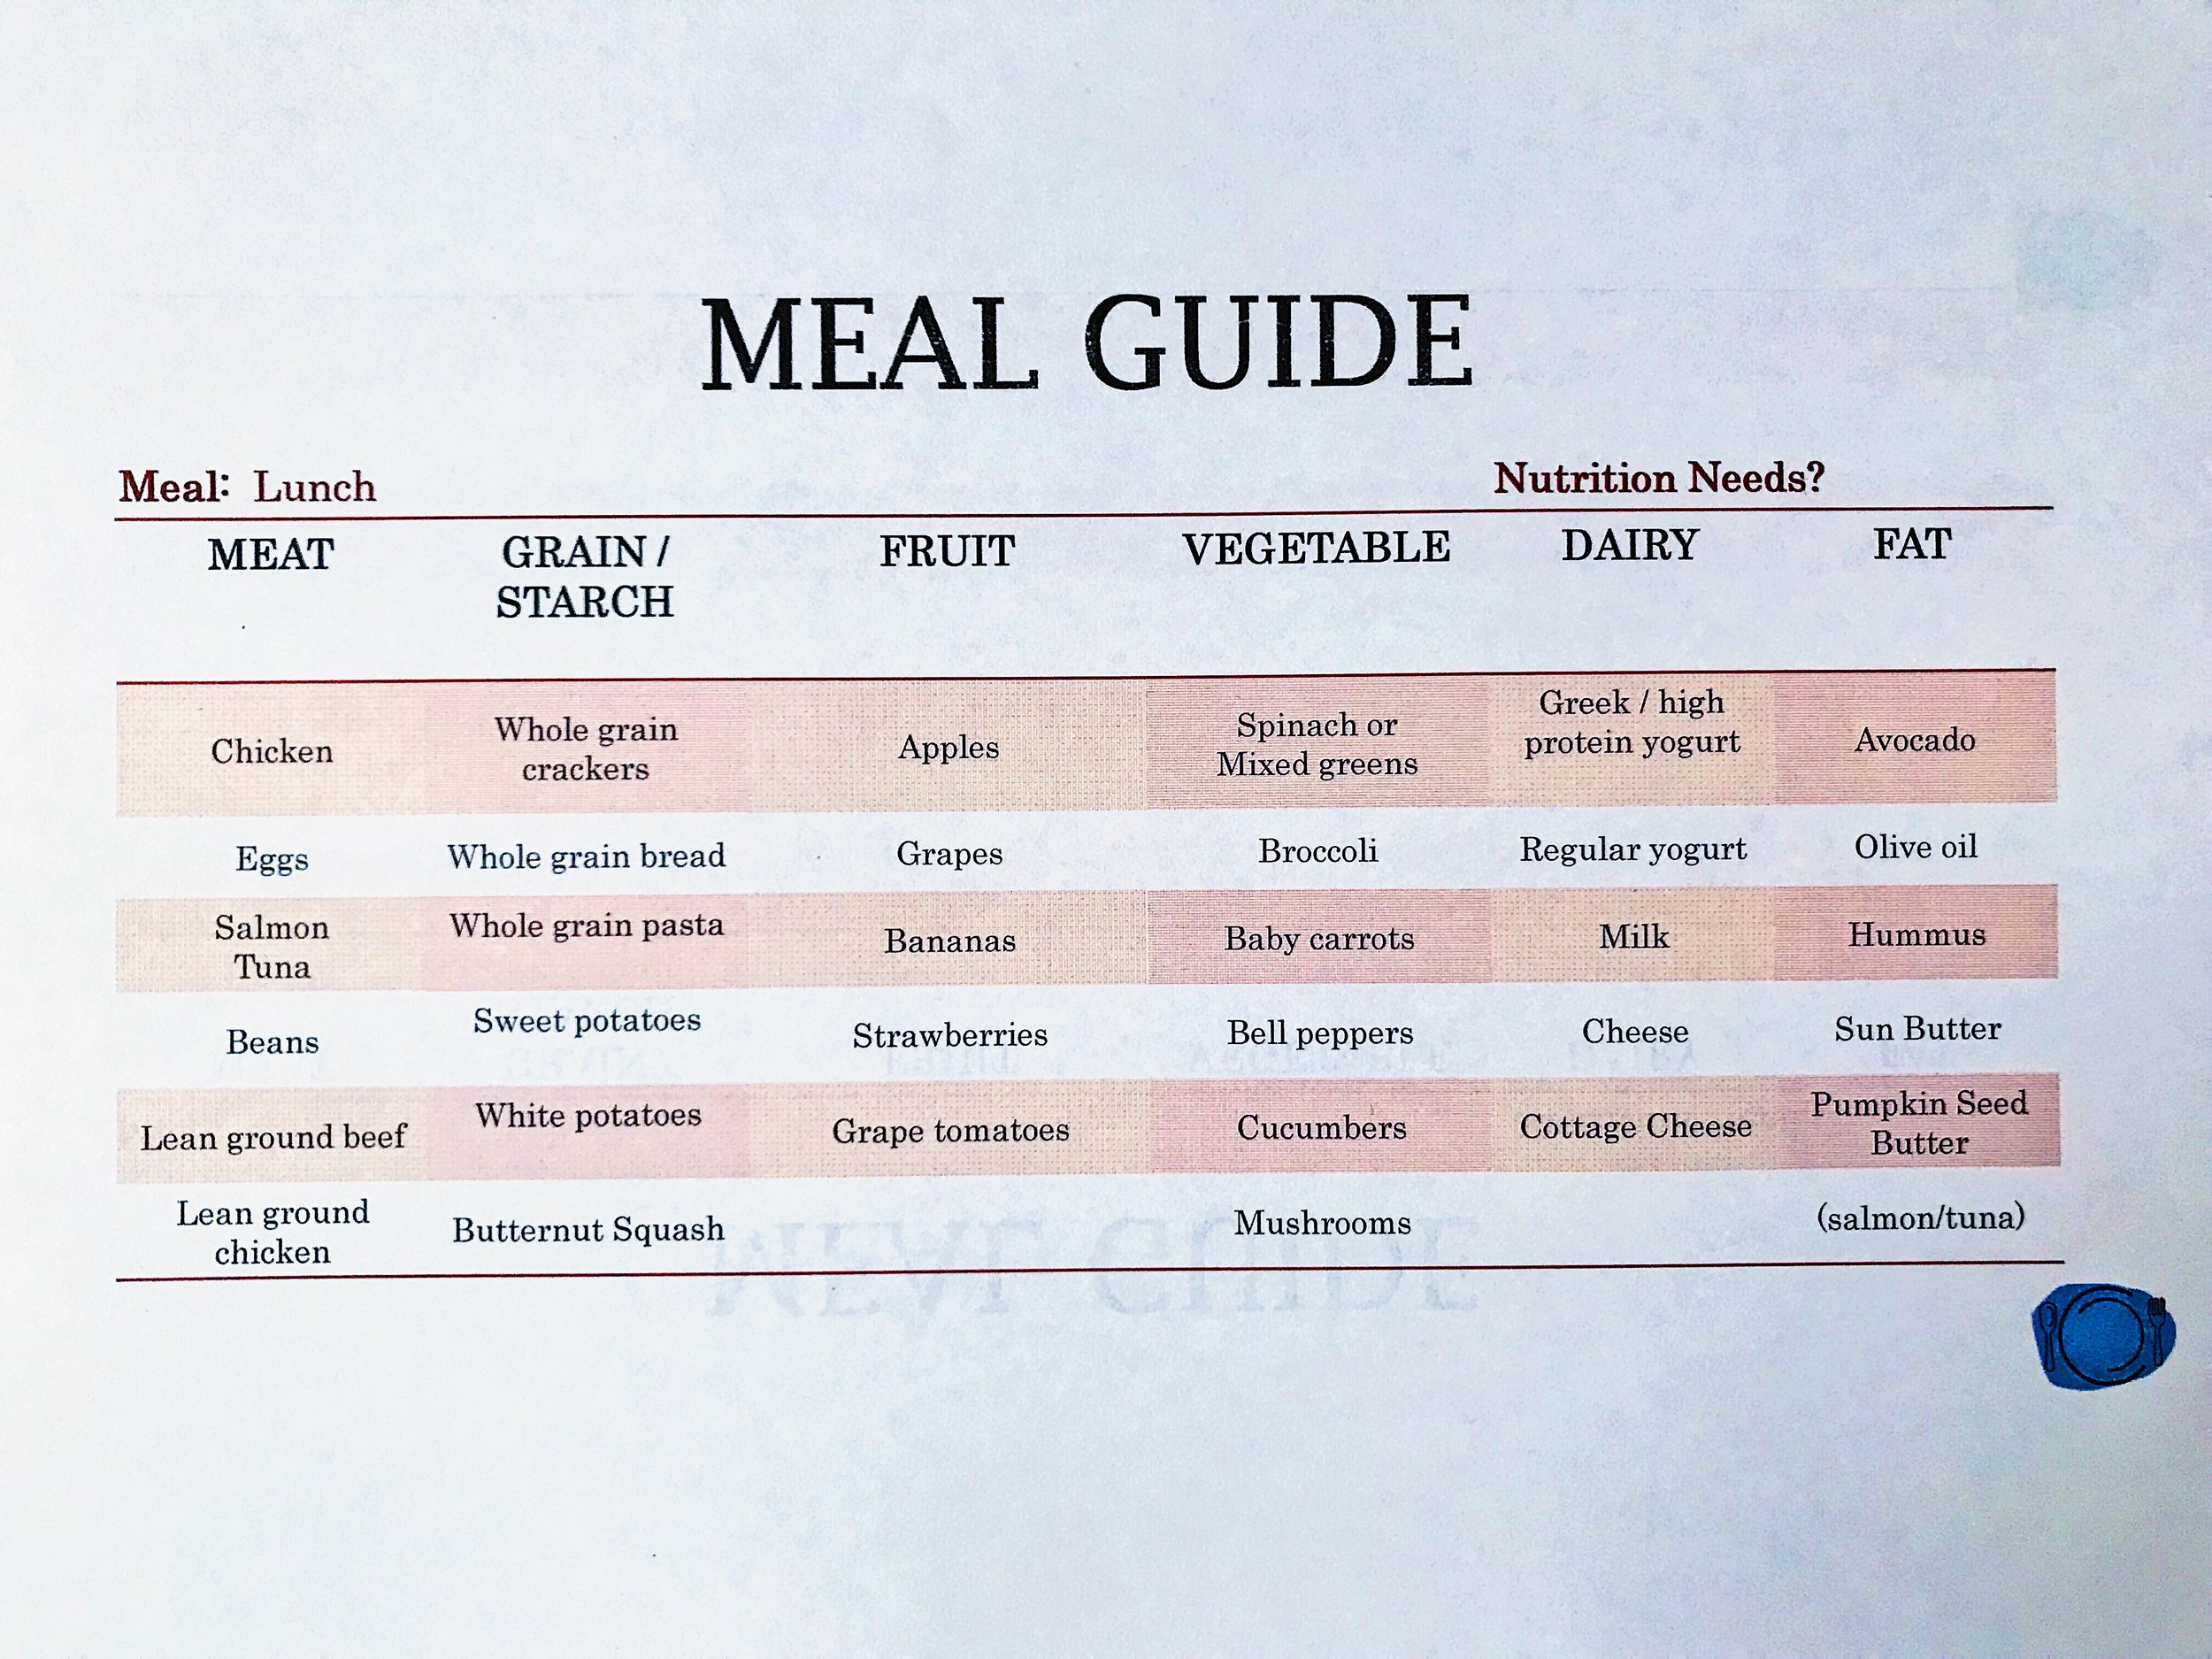 02_Meal Guide_with optionsJPG.JPG